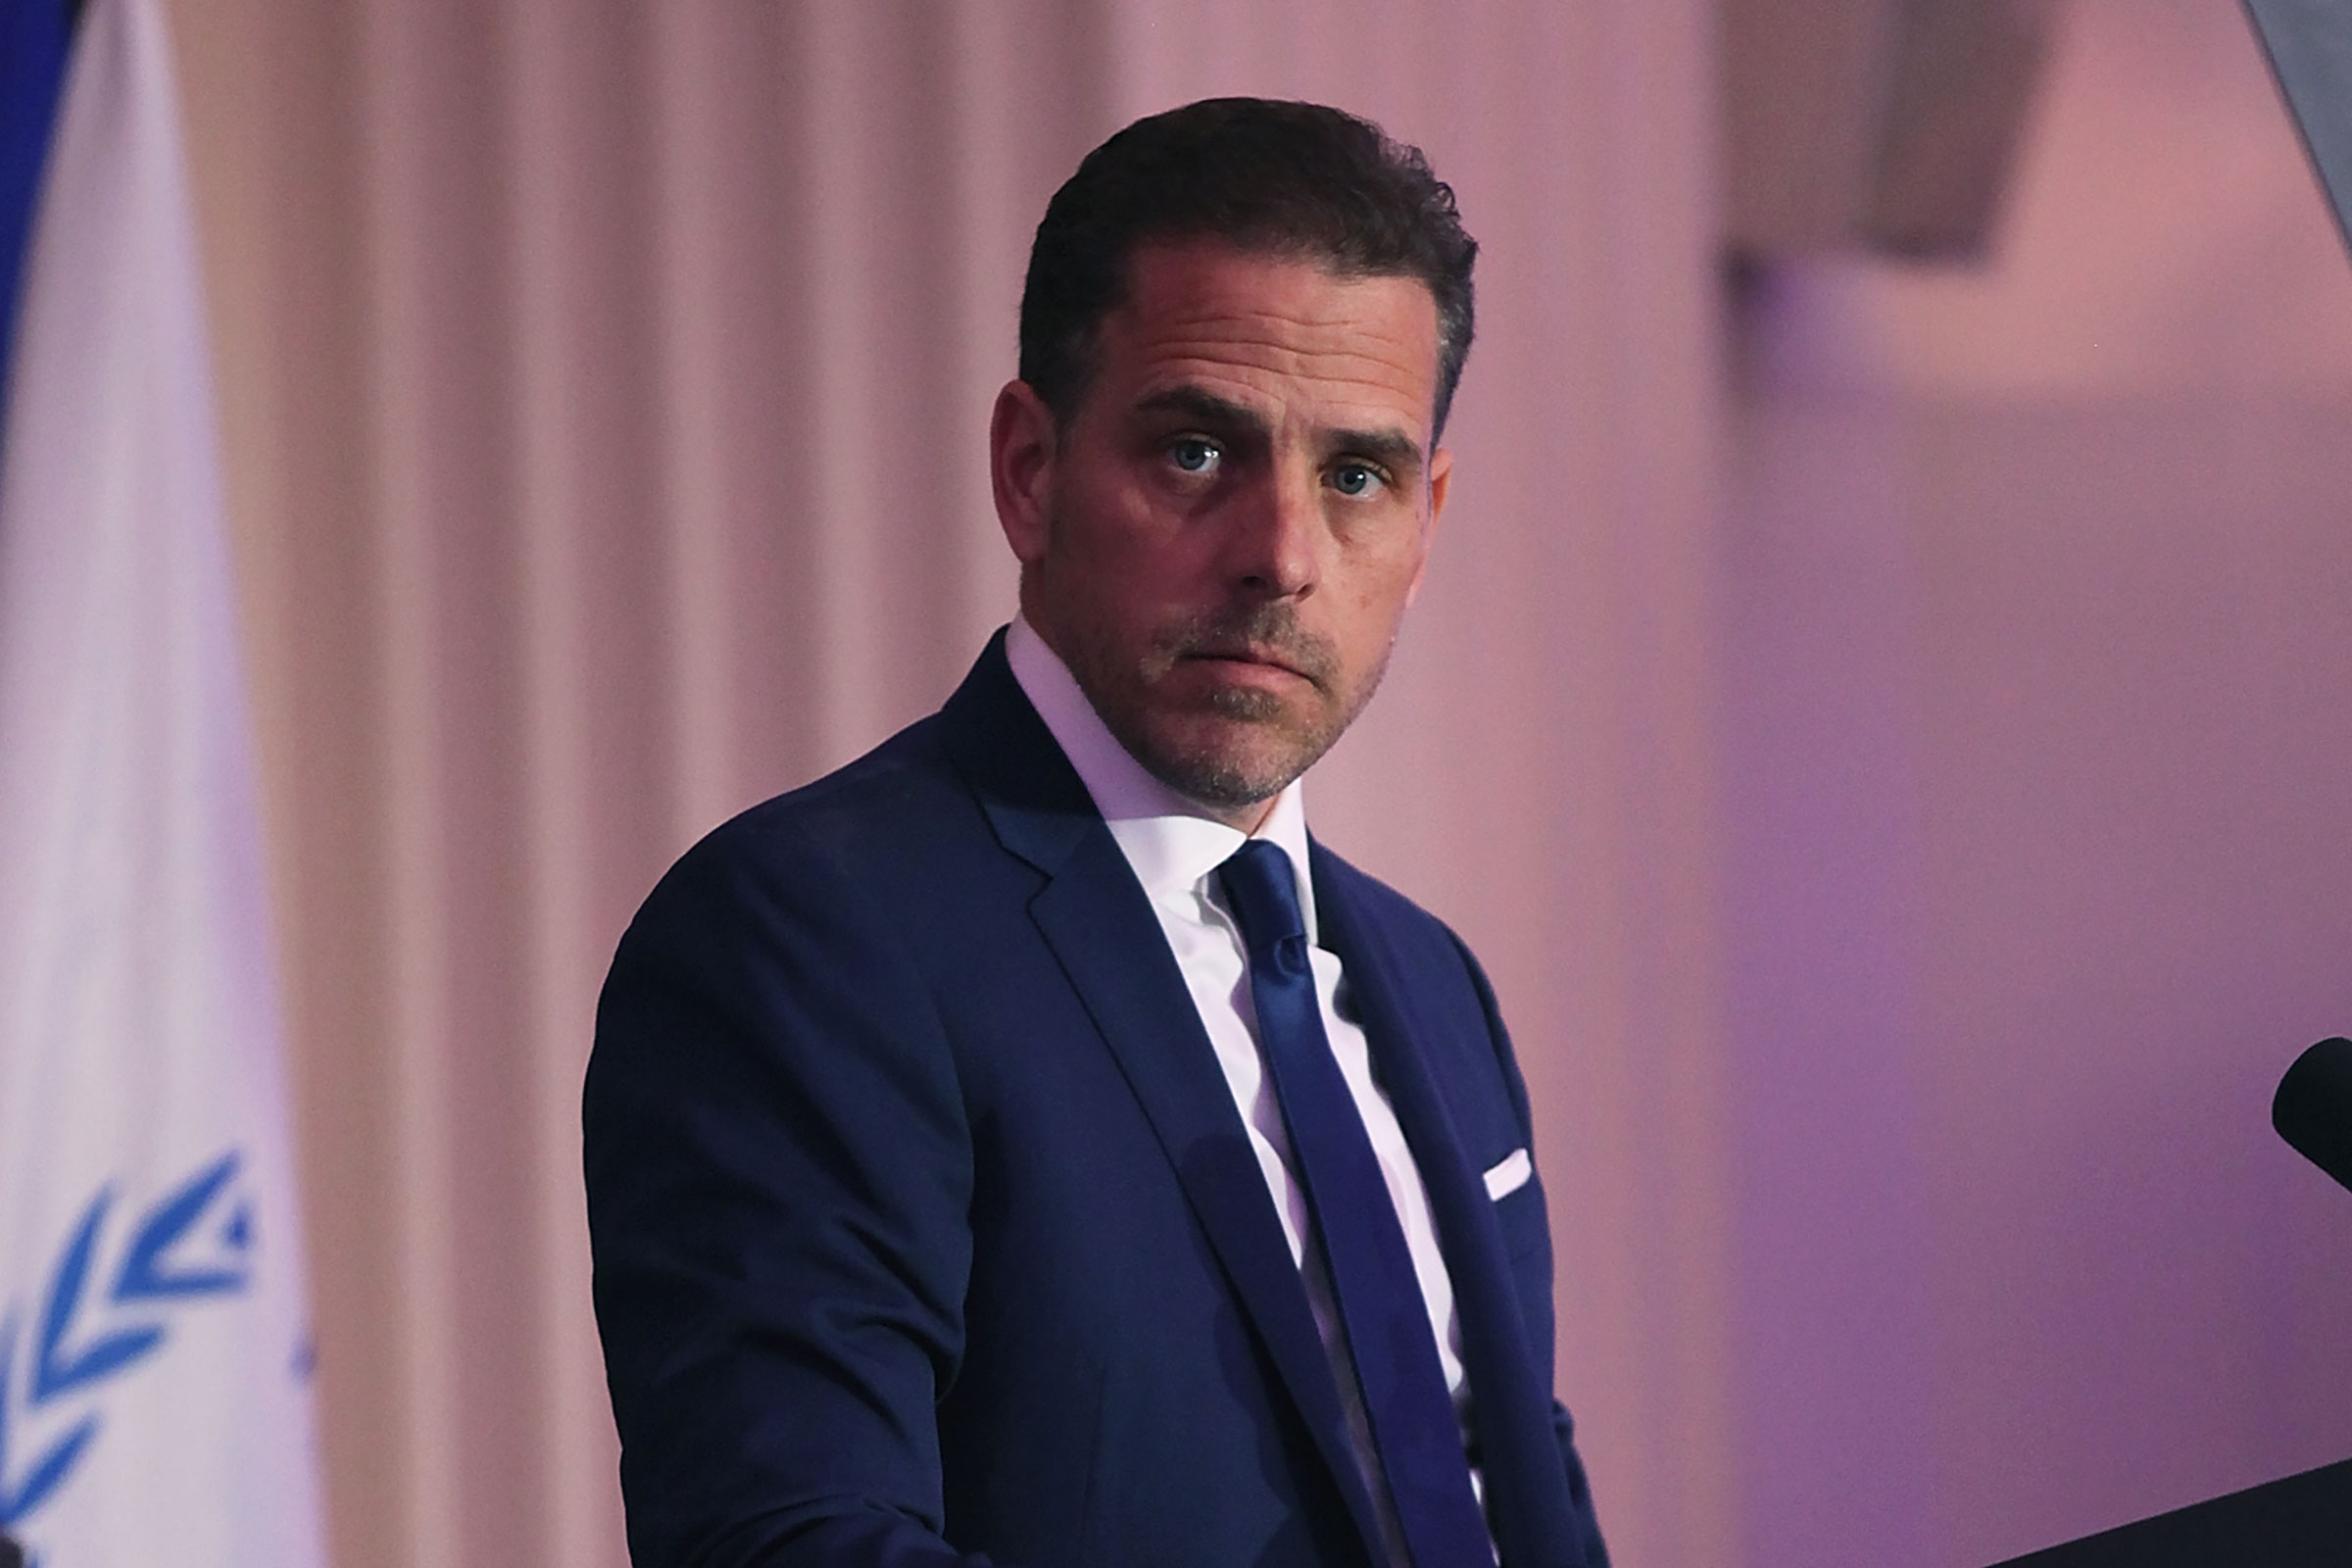 Hunter Biden speaks on stage at the World Food Program USA's Annual McGovern-Dole Leadership Award Ceremony on April 12, 2016 in Washington, DC.